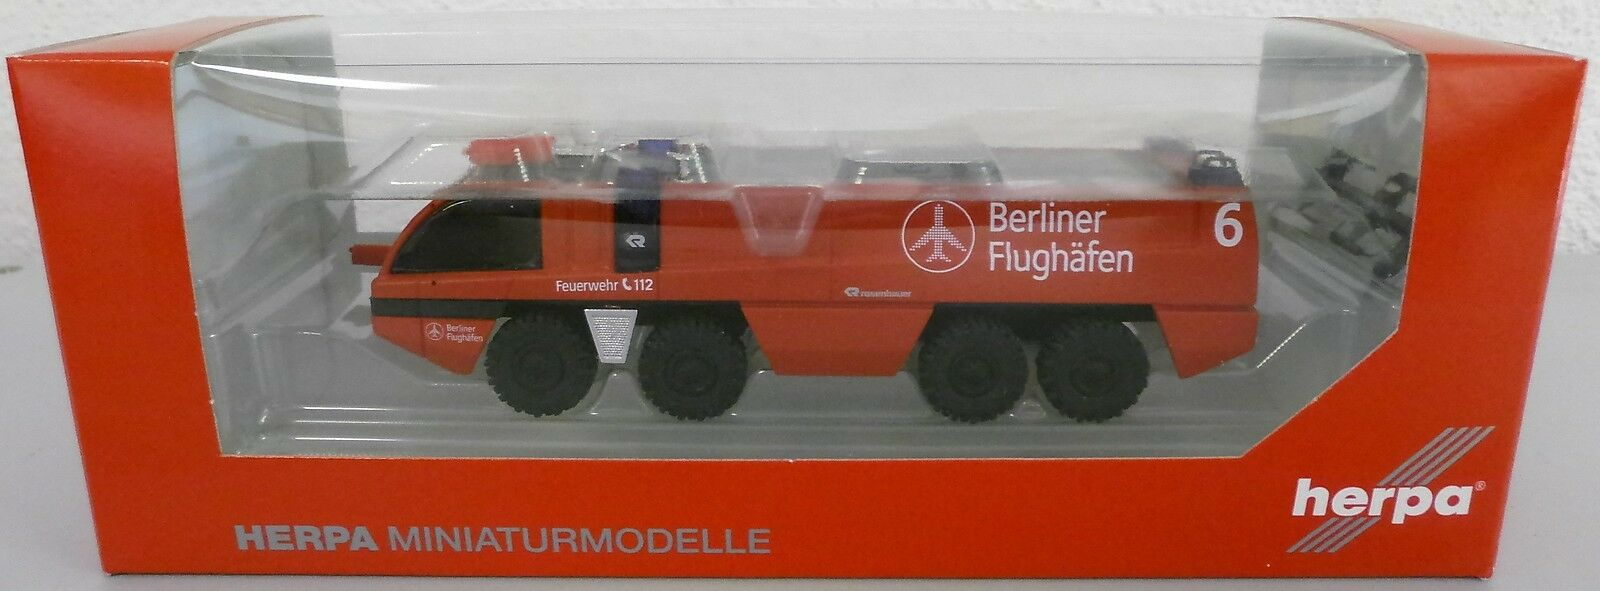 NEUF  HERPA 090377 roses Bauer Design-panther  aéroport pompiers Berlin  1 87